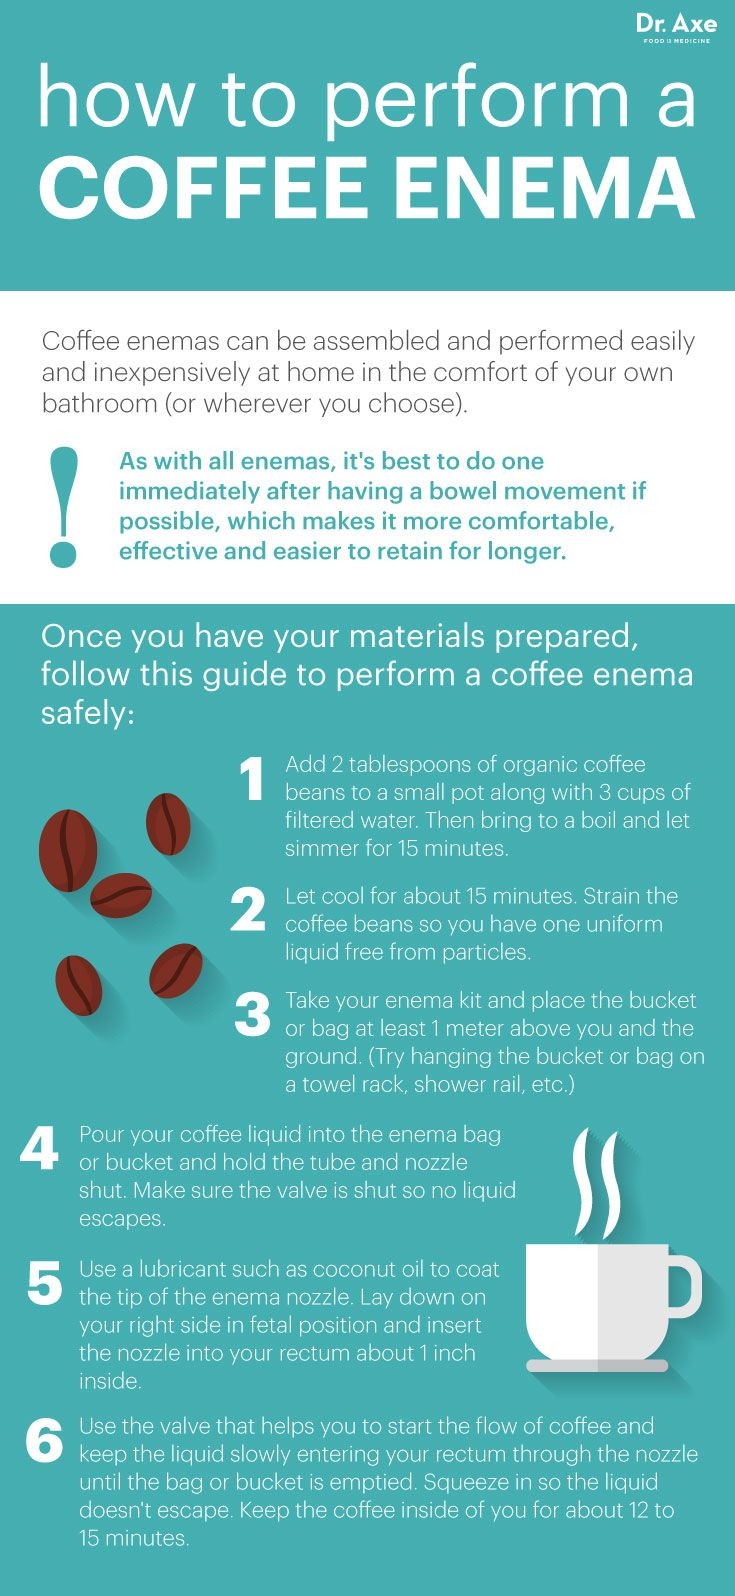 How To Perform a Coffee Enema by Dr. Axe | Holistic | Digestion | Heath Infographic